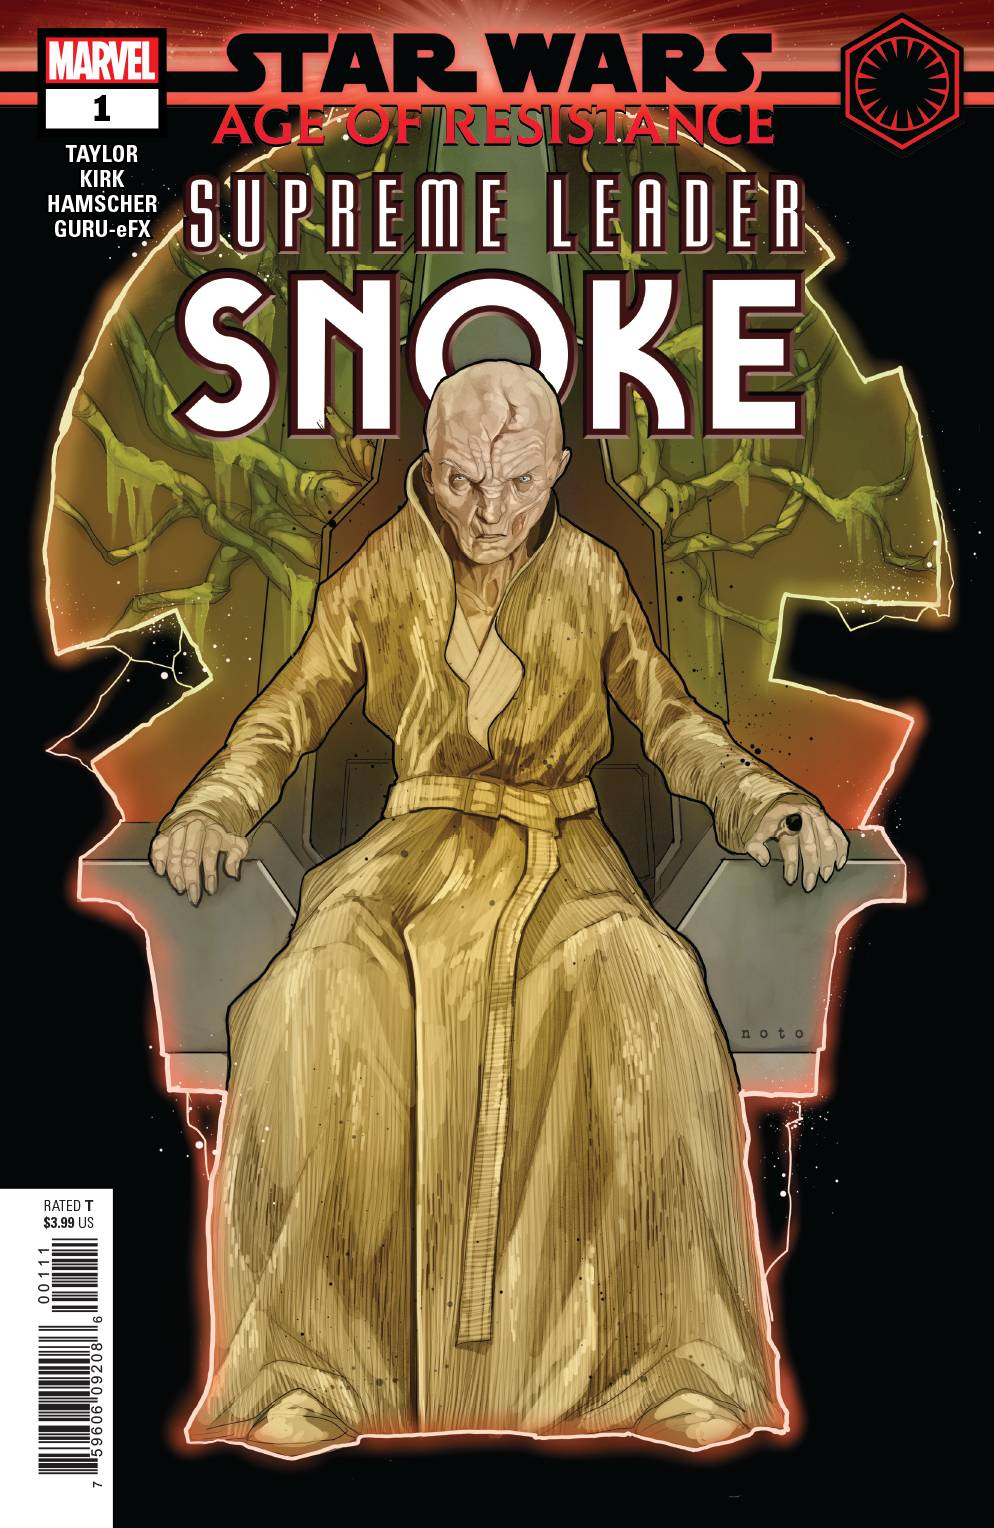 STAR WARS AOR SUPREME LEADER SNOKE #1